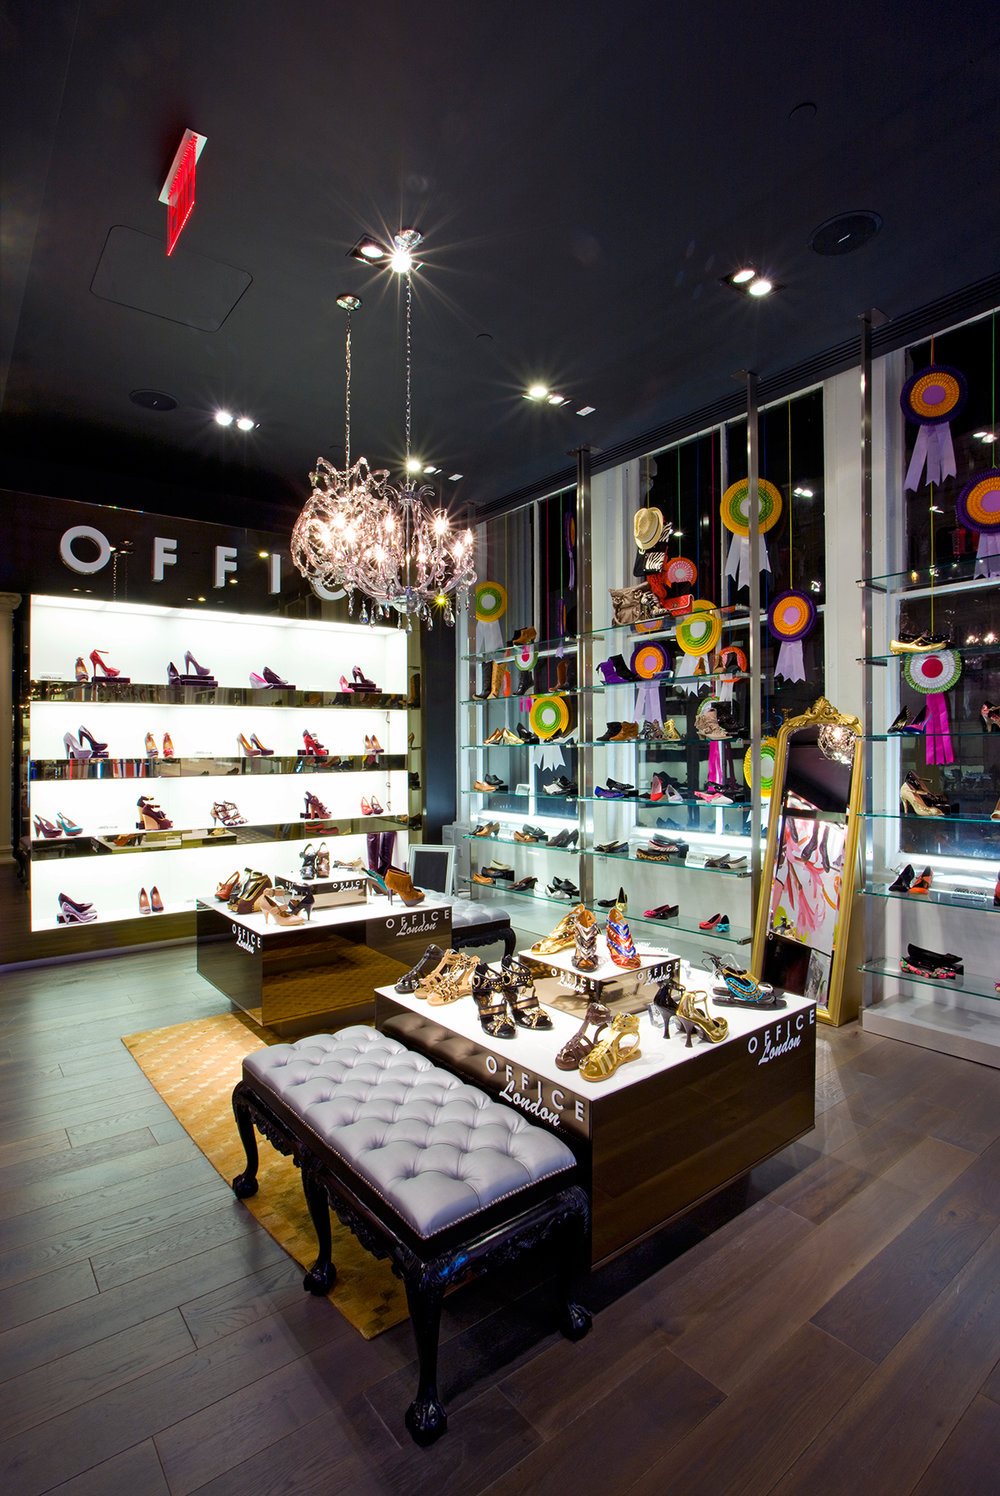 Womens sandals and heels on a brightly lit display table and shelf with chandeliers overhead. MEP designed by 2LS Consulting Engineering.